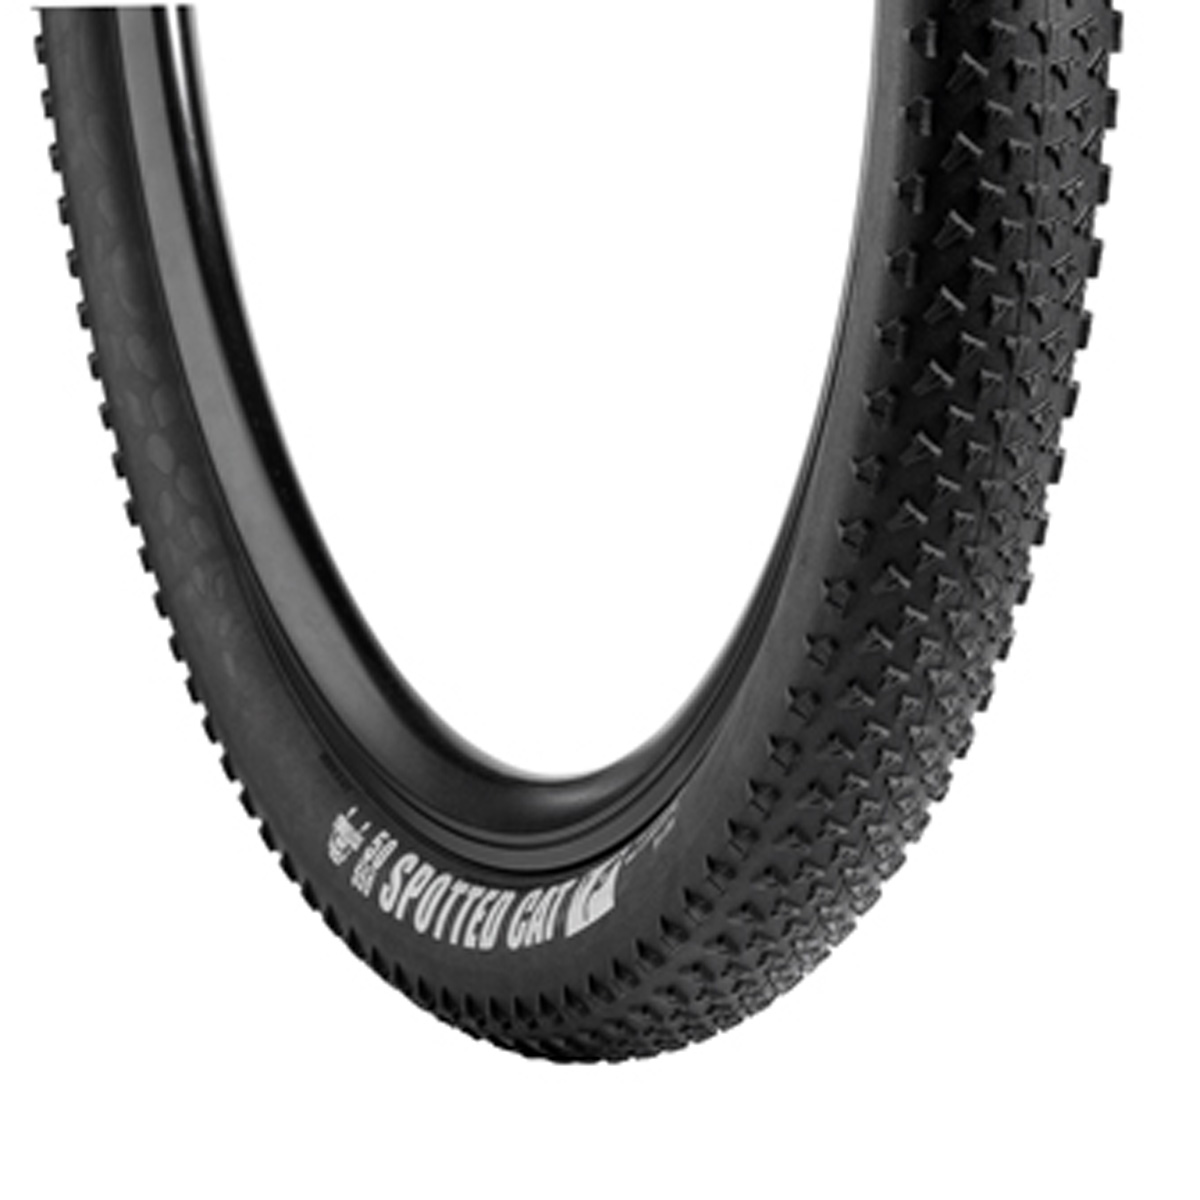 Vredestein Spotted Cat Tubeless Ready Mountain Bicycle Ti...